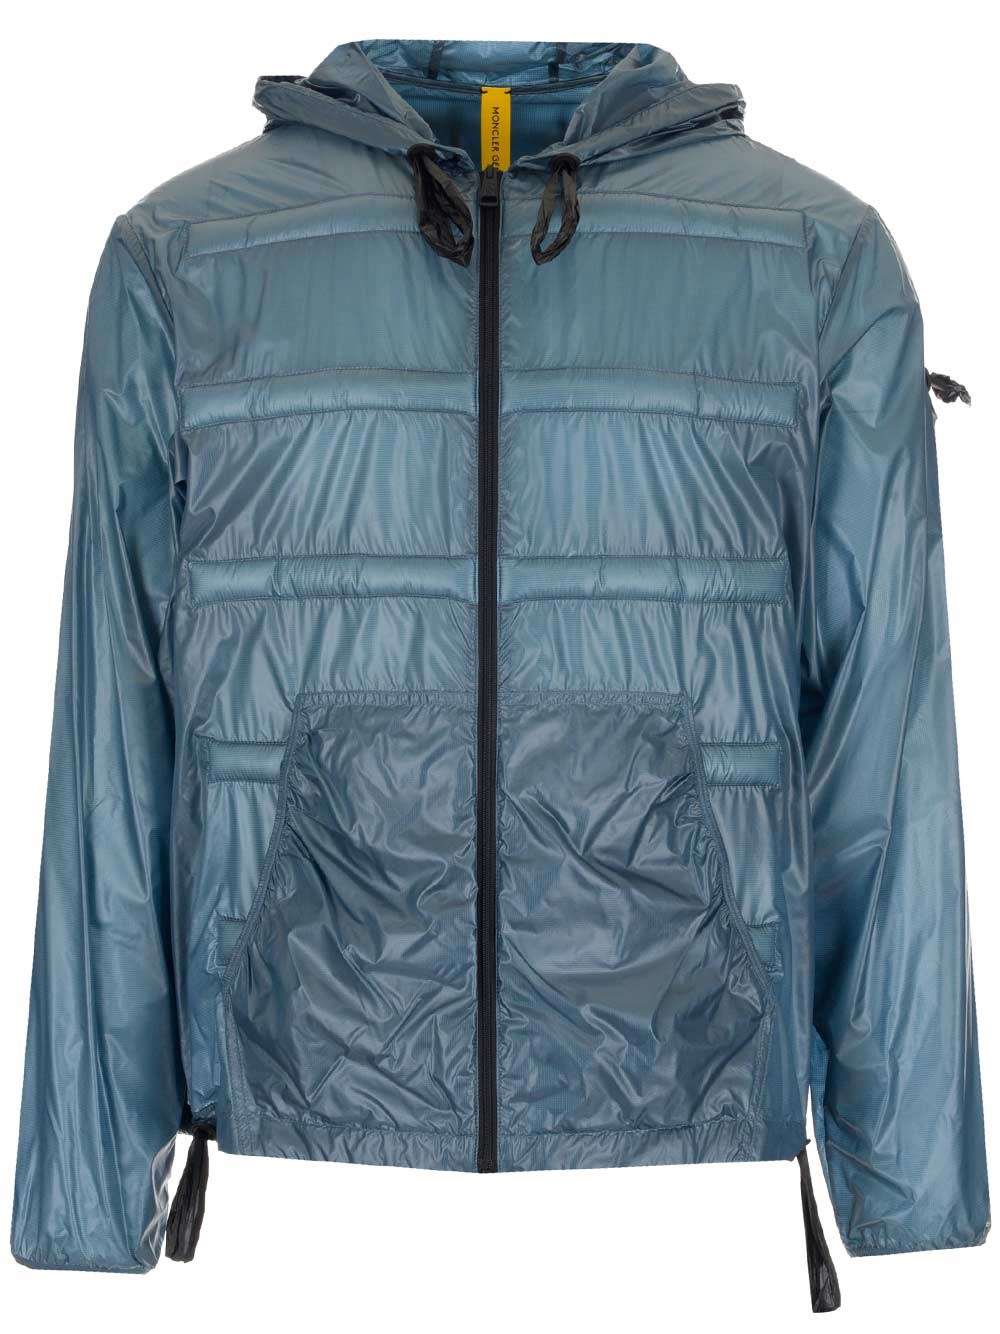 MONCLER GENIUS Jacket Blue From The 5 Moncler Craig